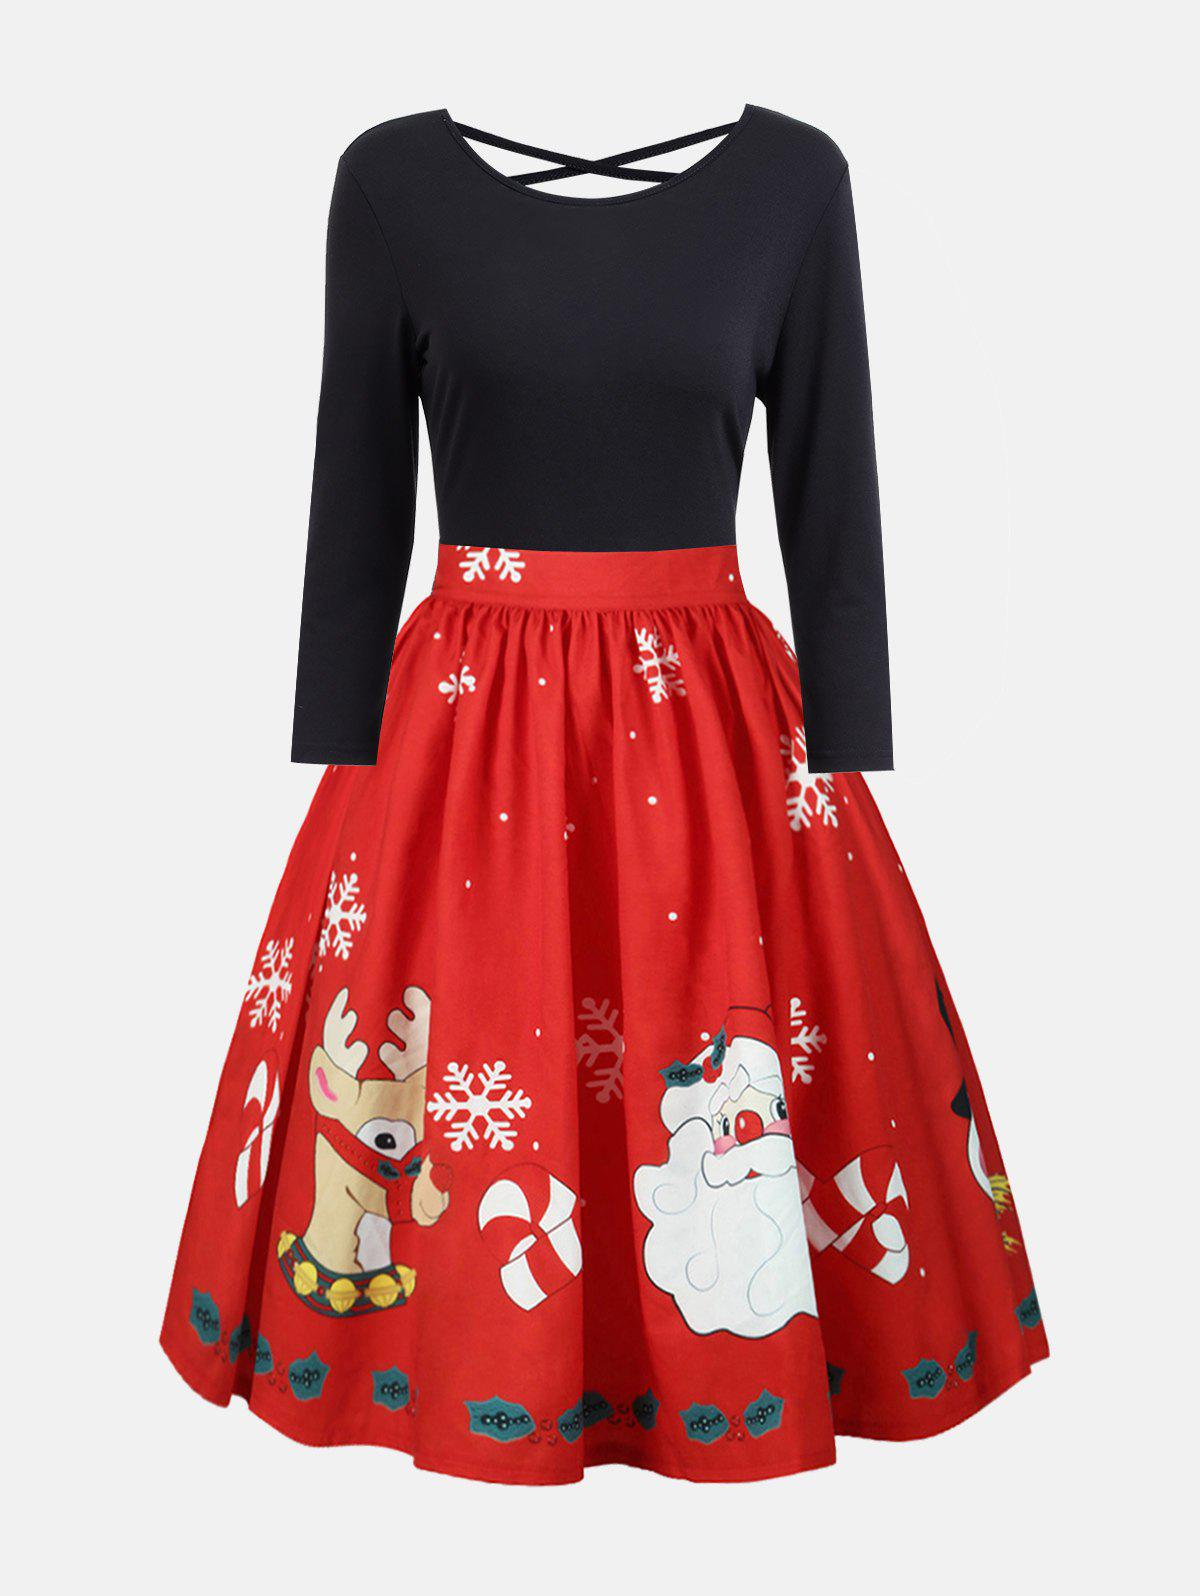 Plus Size Christmas Criss Cross Print DressWOMEN<br><br>Size: XL; Color: RED; Style: Vintage; Material: Polyester; Silhouette: A-Line; Dresses Length: Mid-Calf; Neckline: Round Collar; Sleeve Length: Long Sleeves; Embellishment: Criss-Cross; Pattern Type: Print; With Belt: No; Season: Fall,Spring; Weight: 0.2700kg; Package Contents: 1 x Dress;